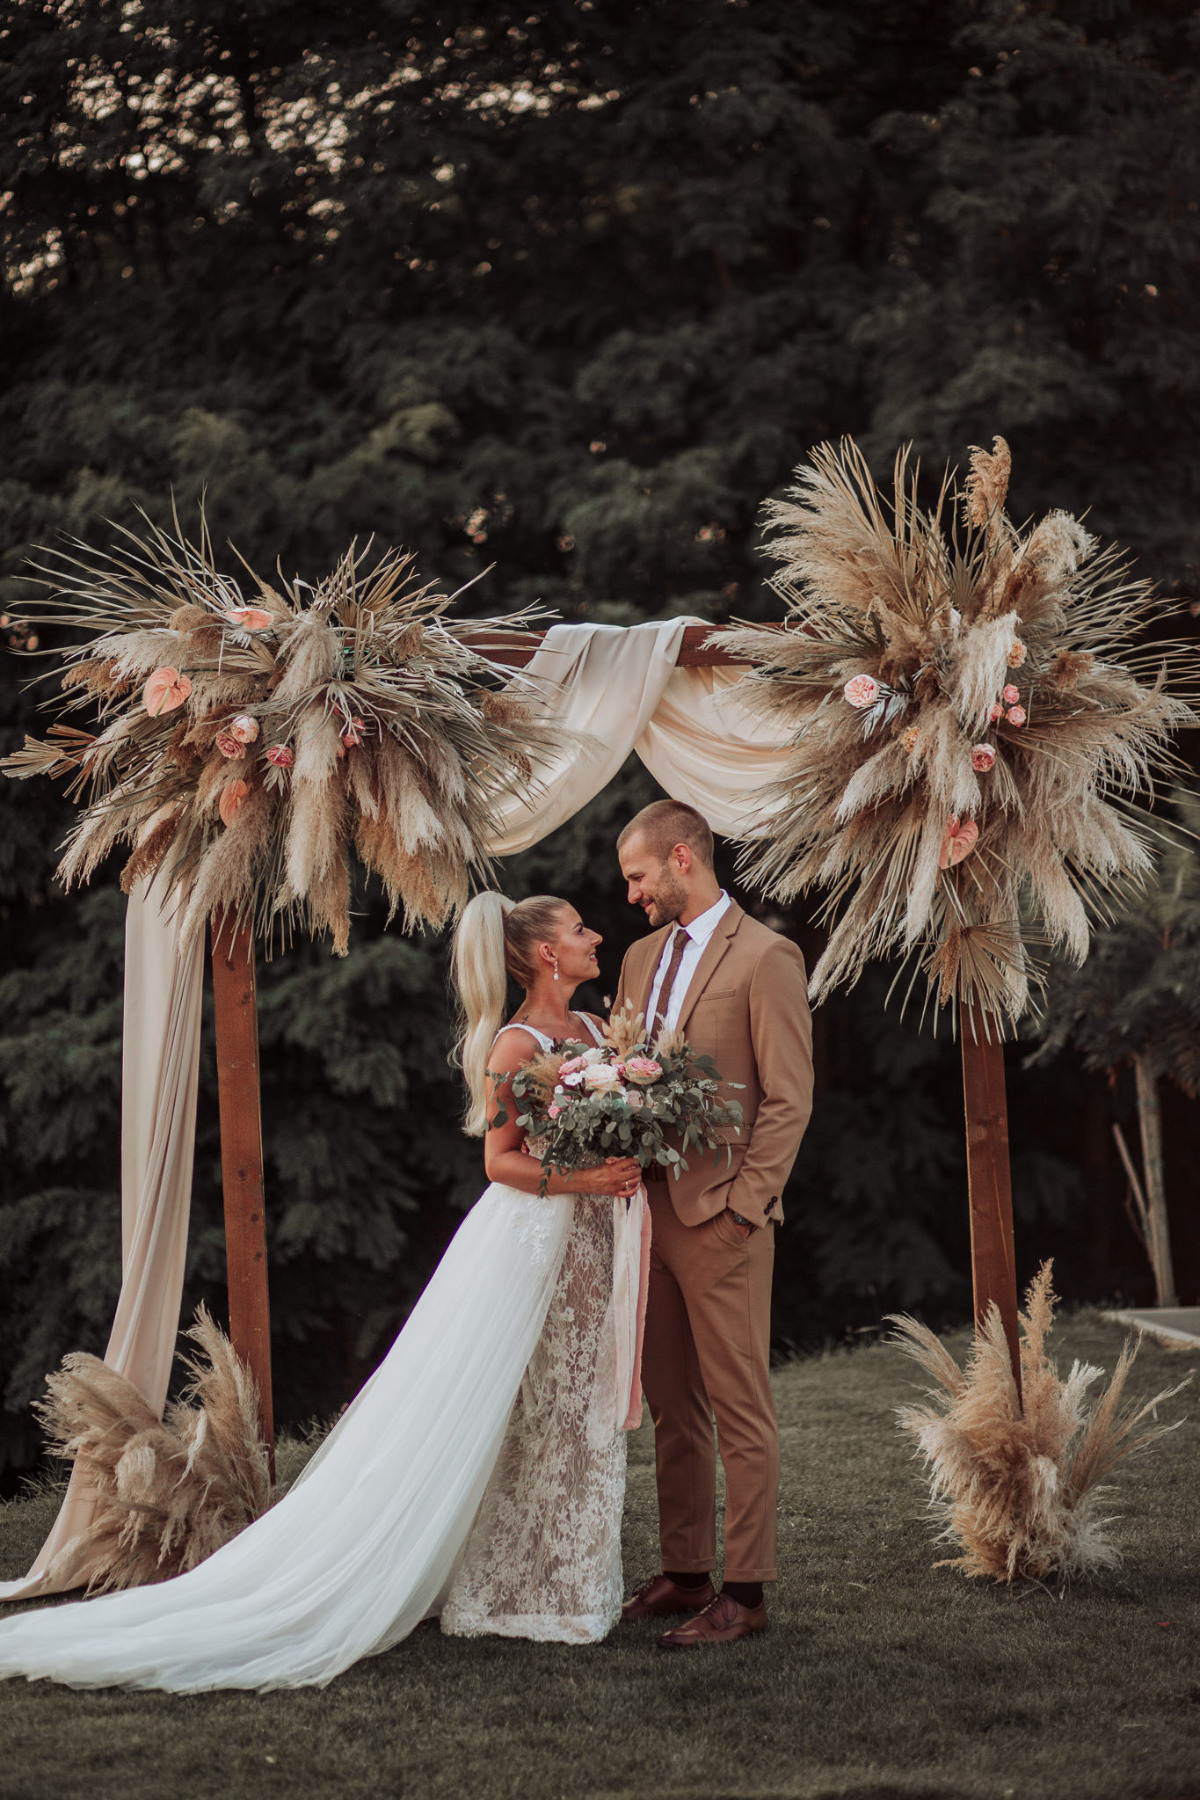 Pampas grass wedding backdrop